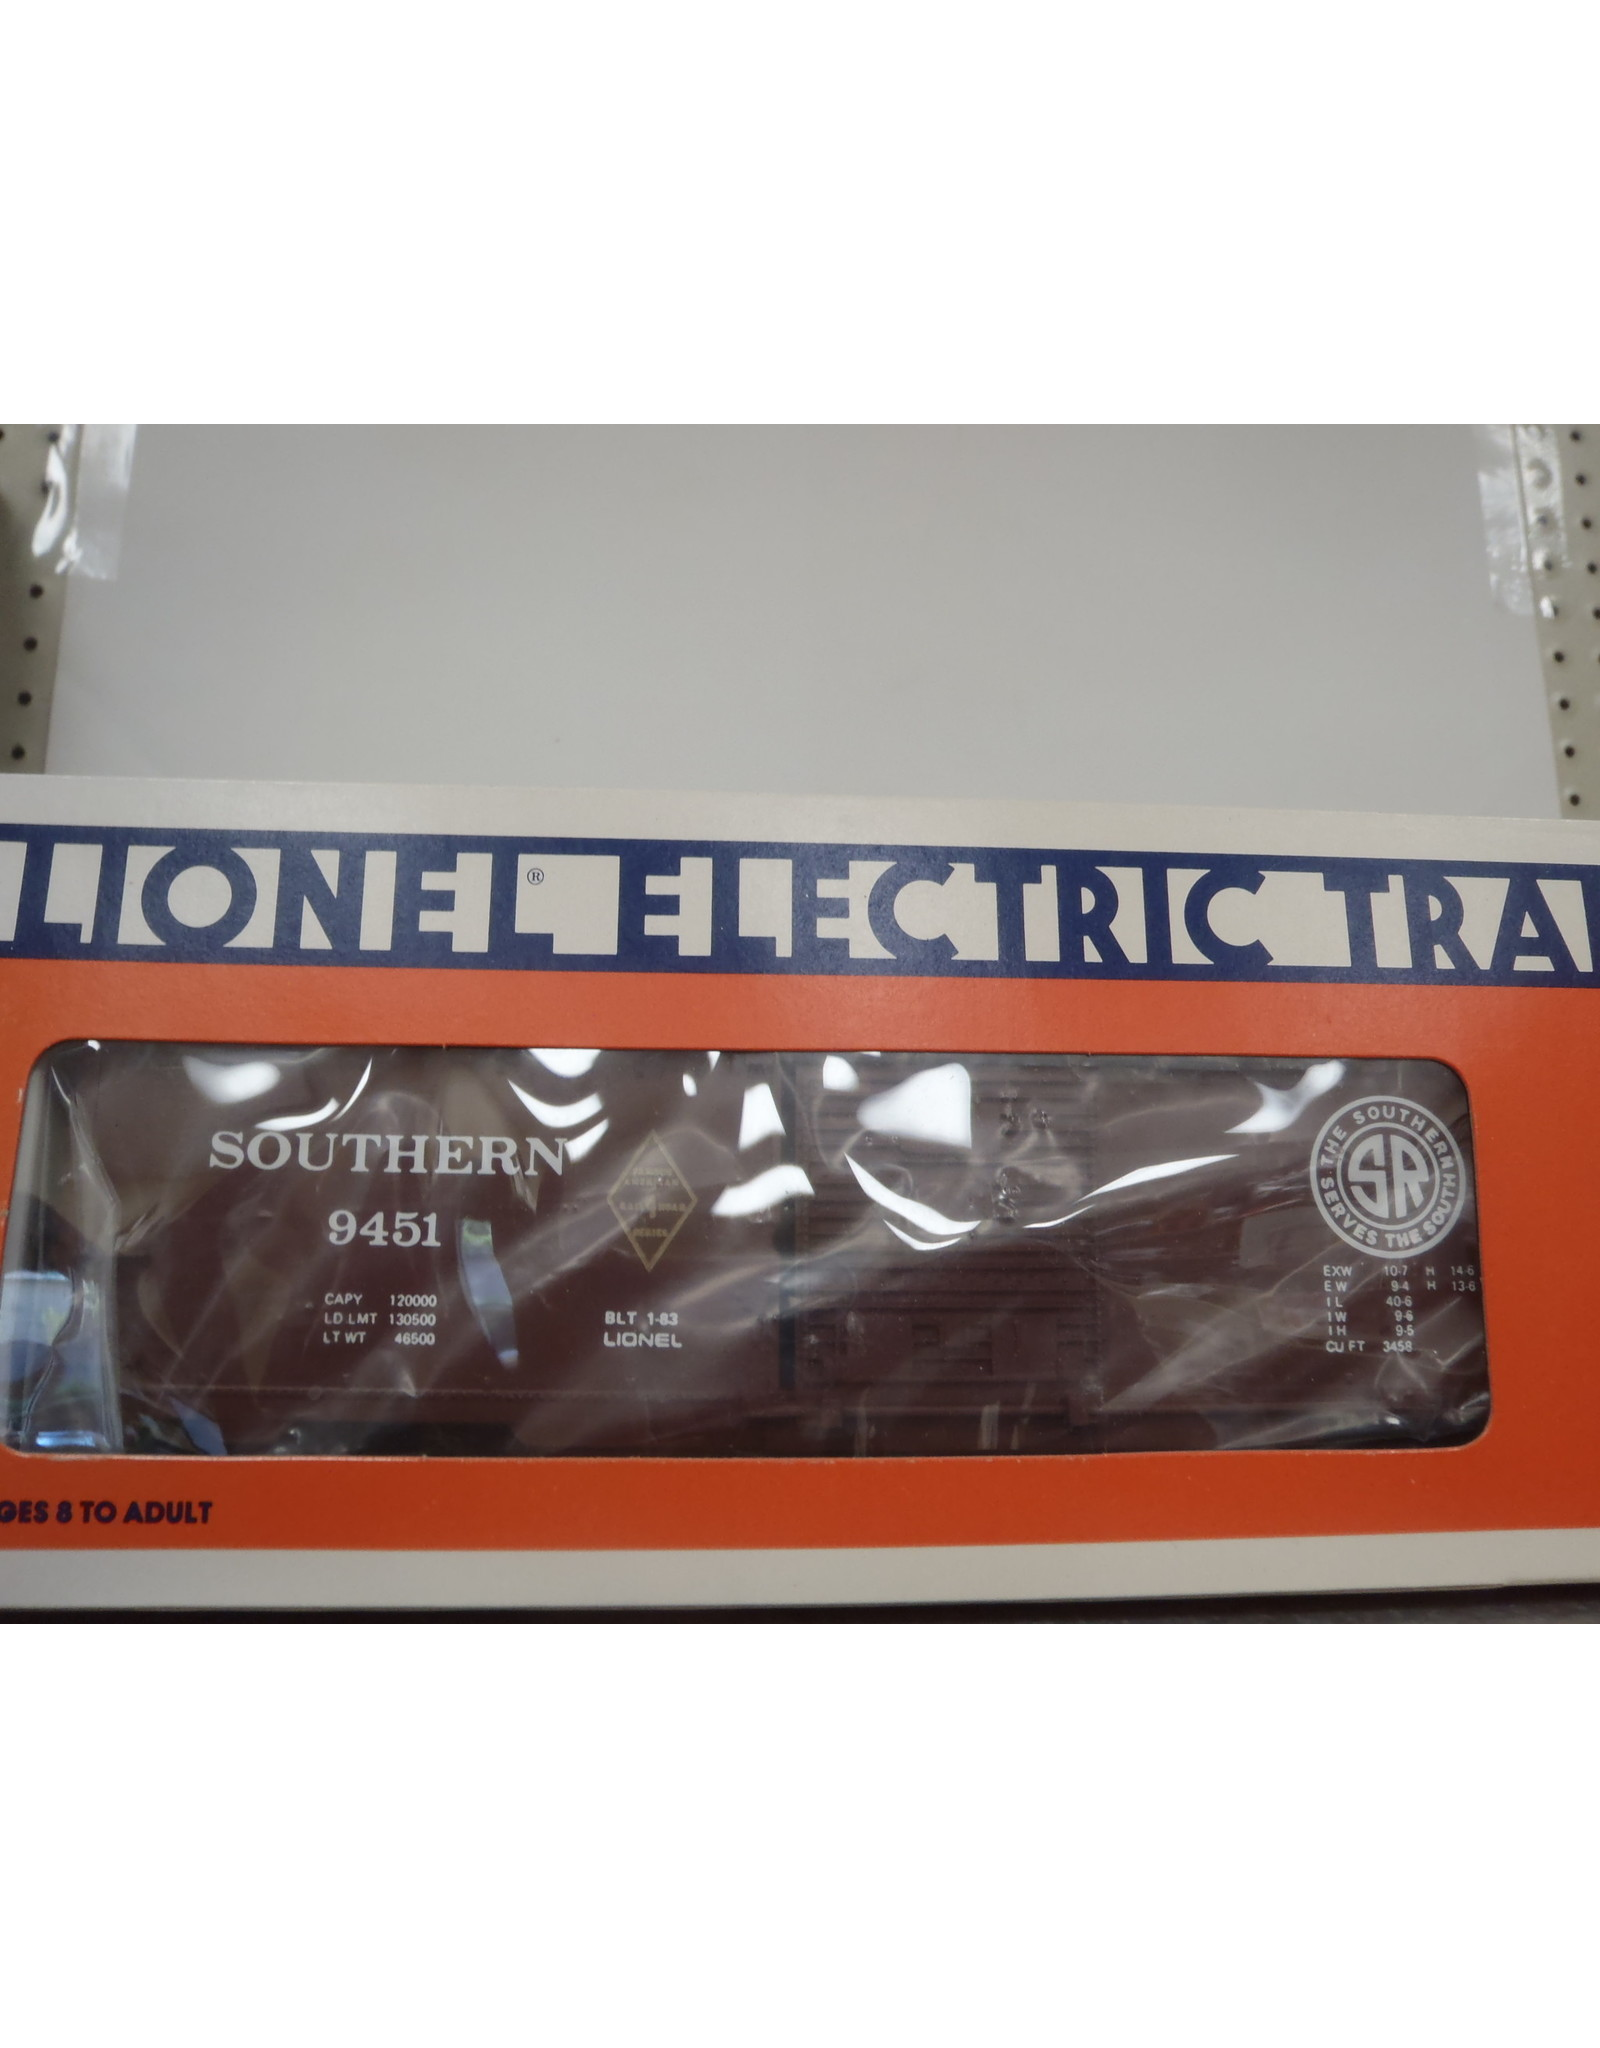 Lionel Boxcar Southern 9451